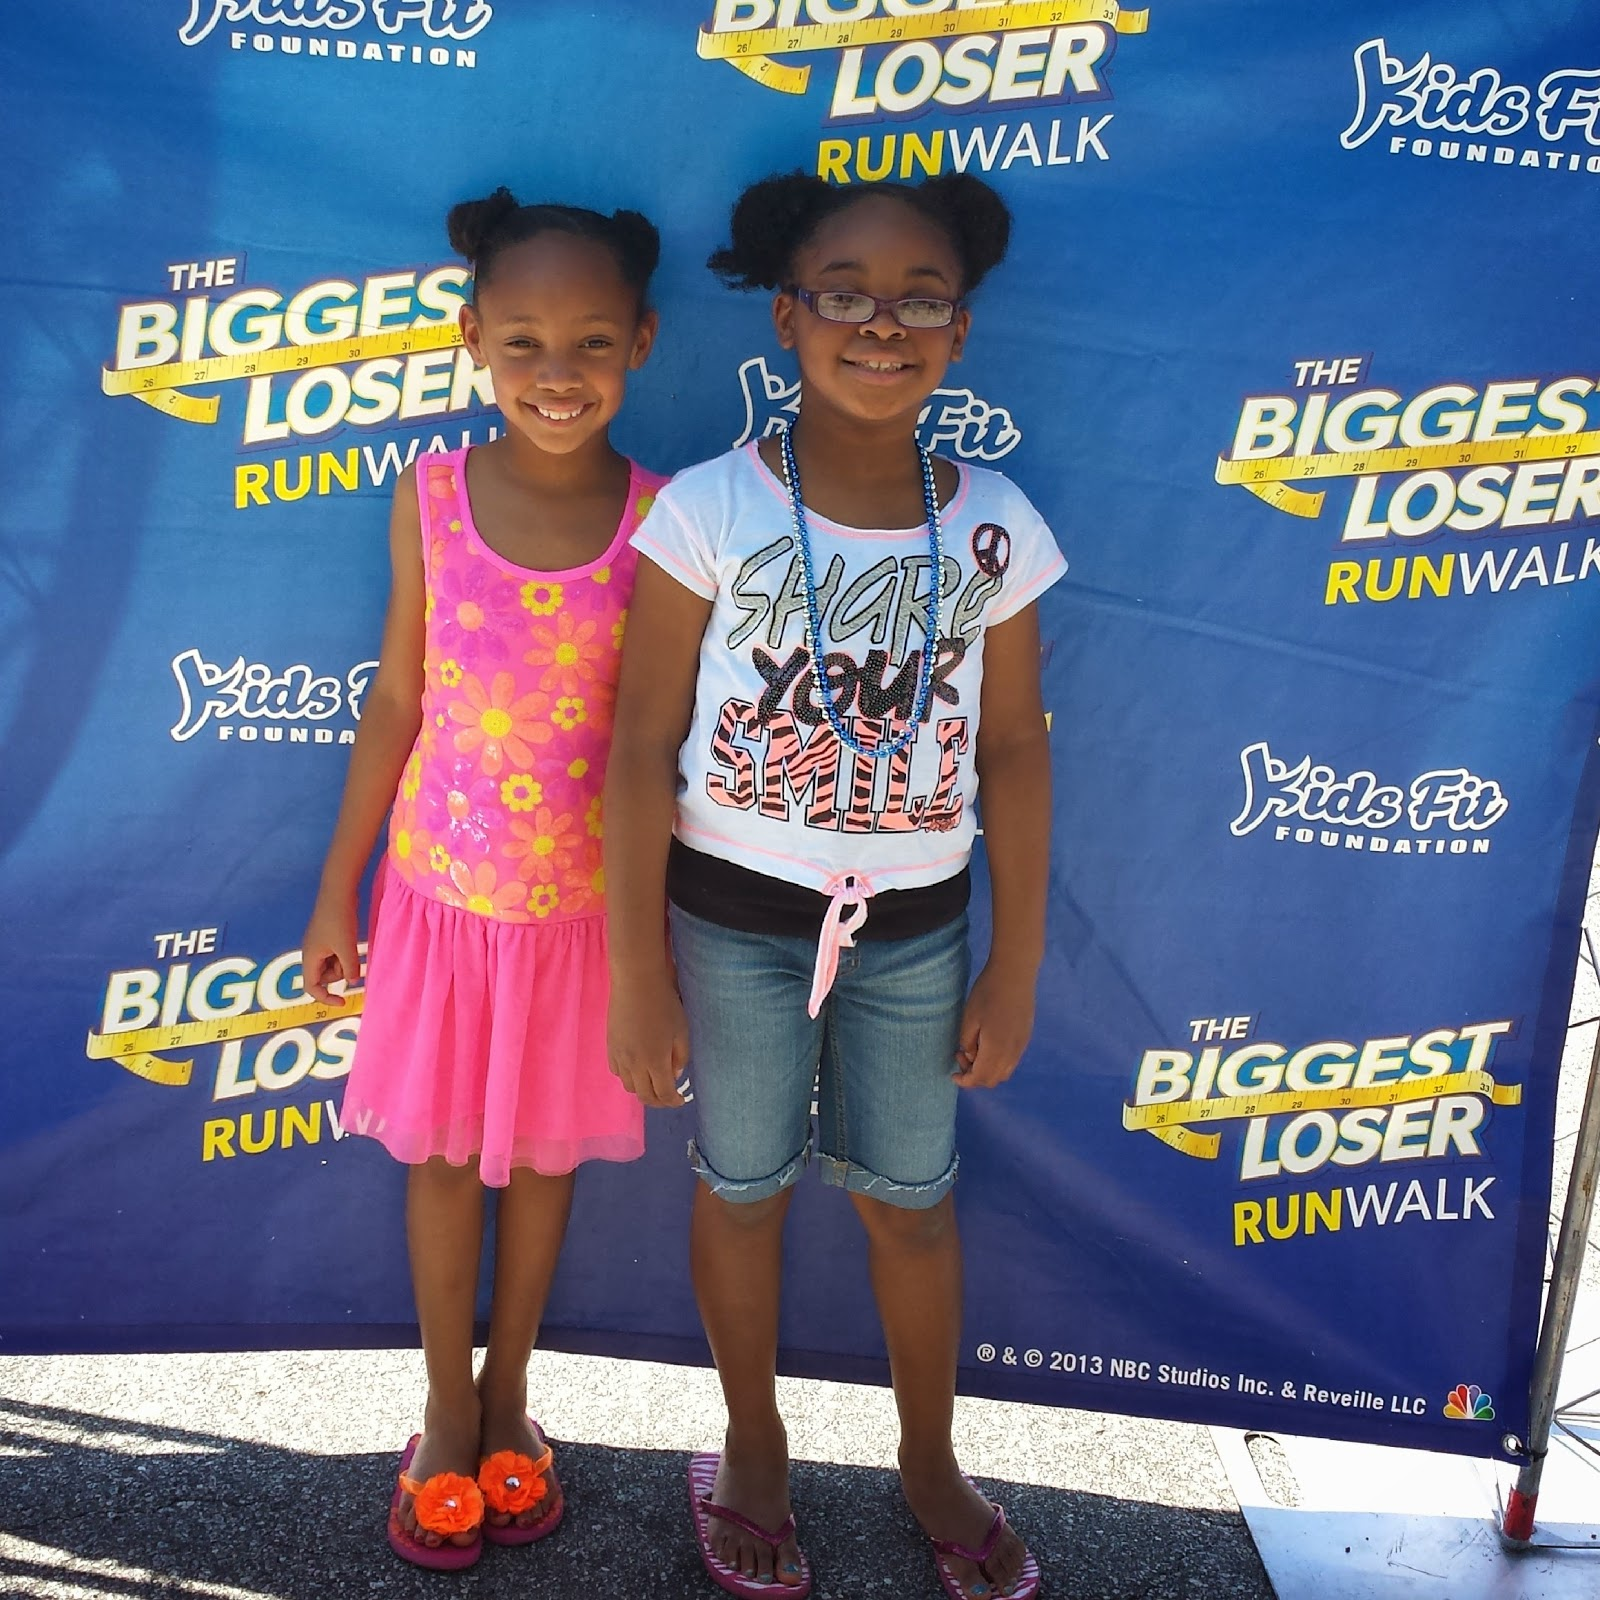 The Biggest Loser FunRun Race Atlanta Recap via ProductReviewMom.com